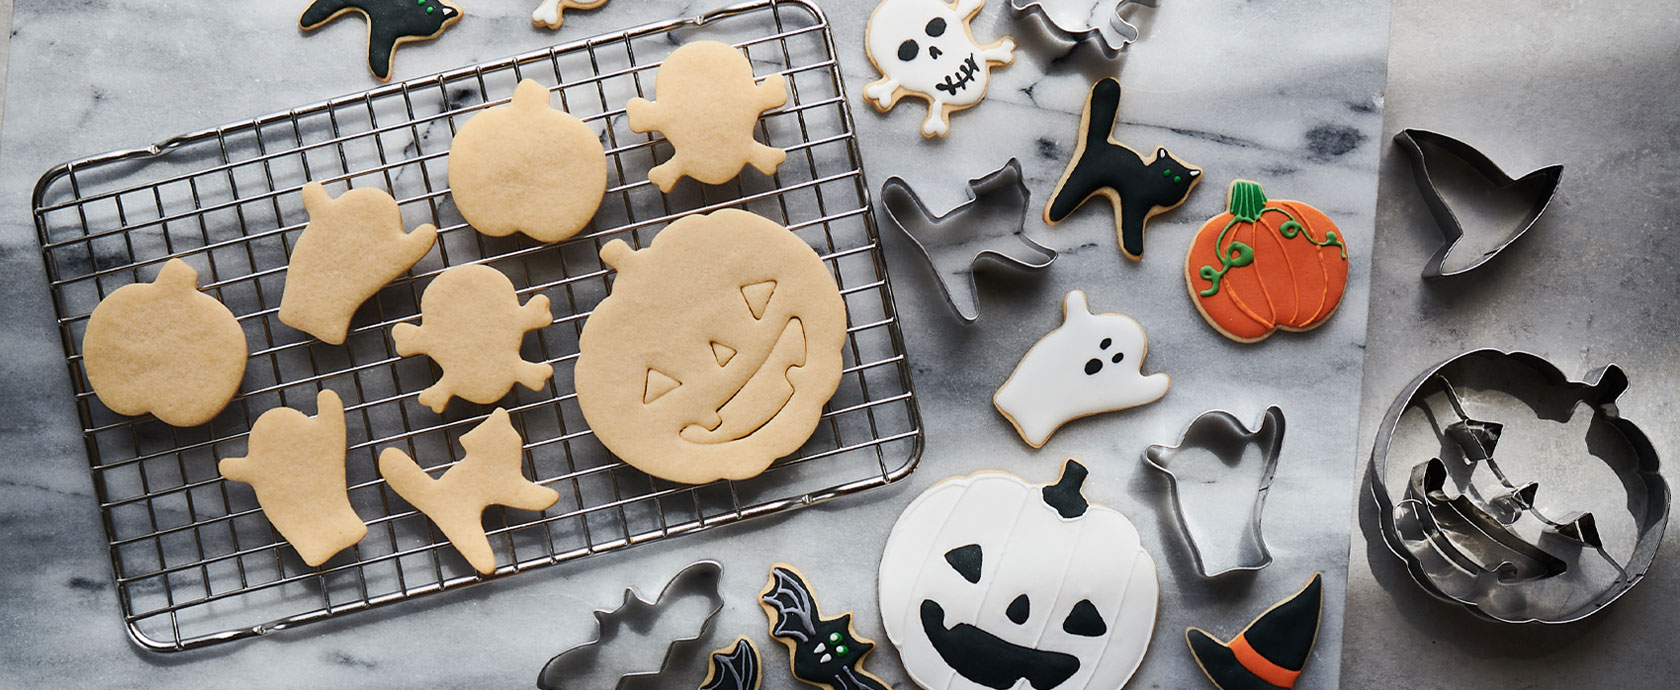 Decorated Halloween cookies and cookie cutters.